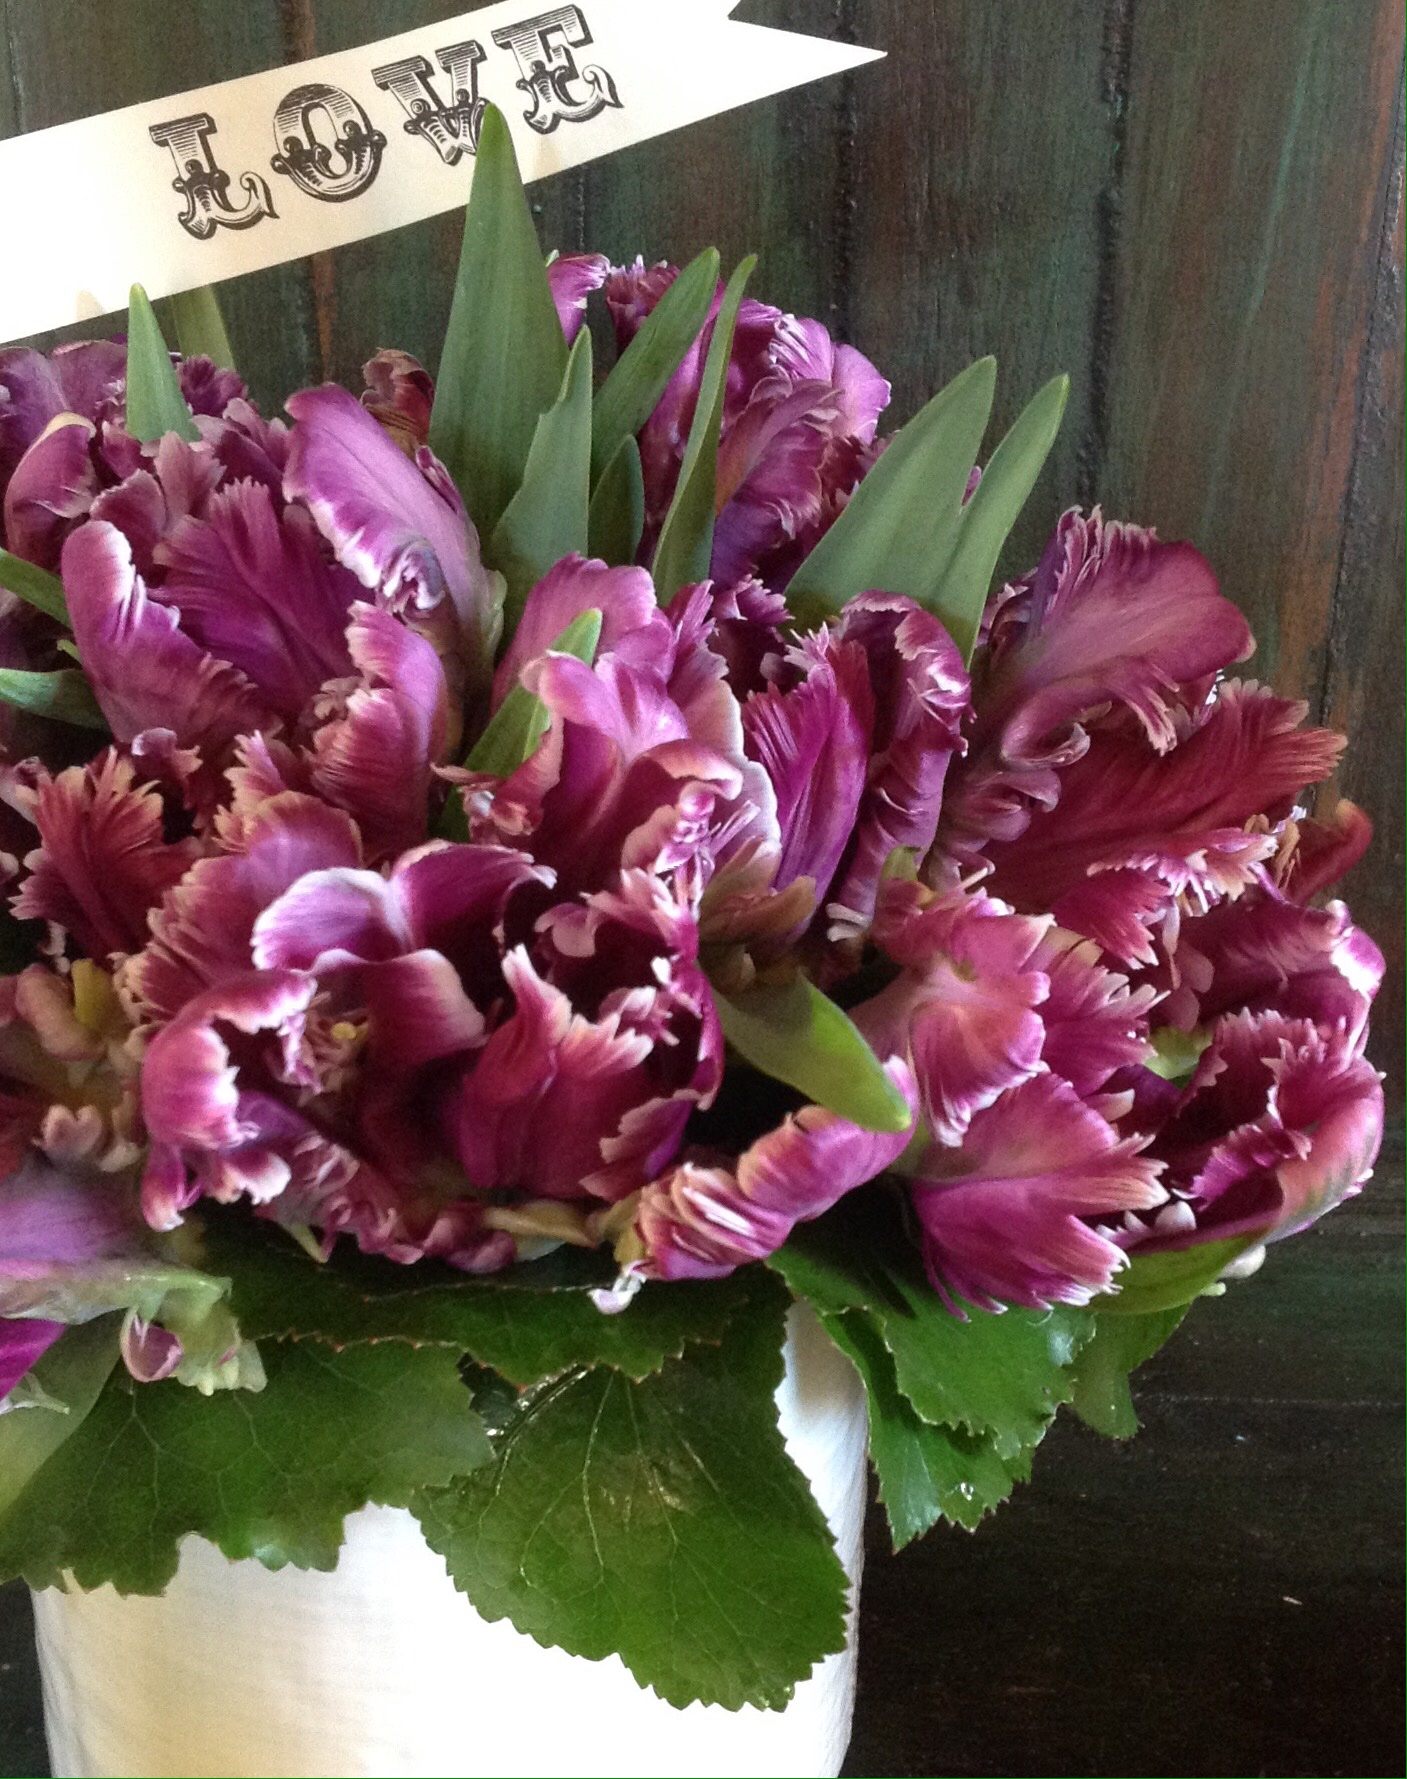 Mysterious Parrot Tulip bouquets starting at $100